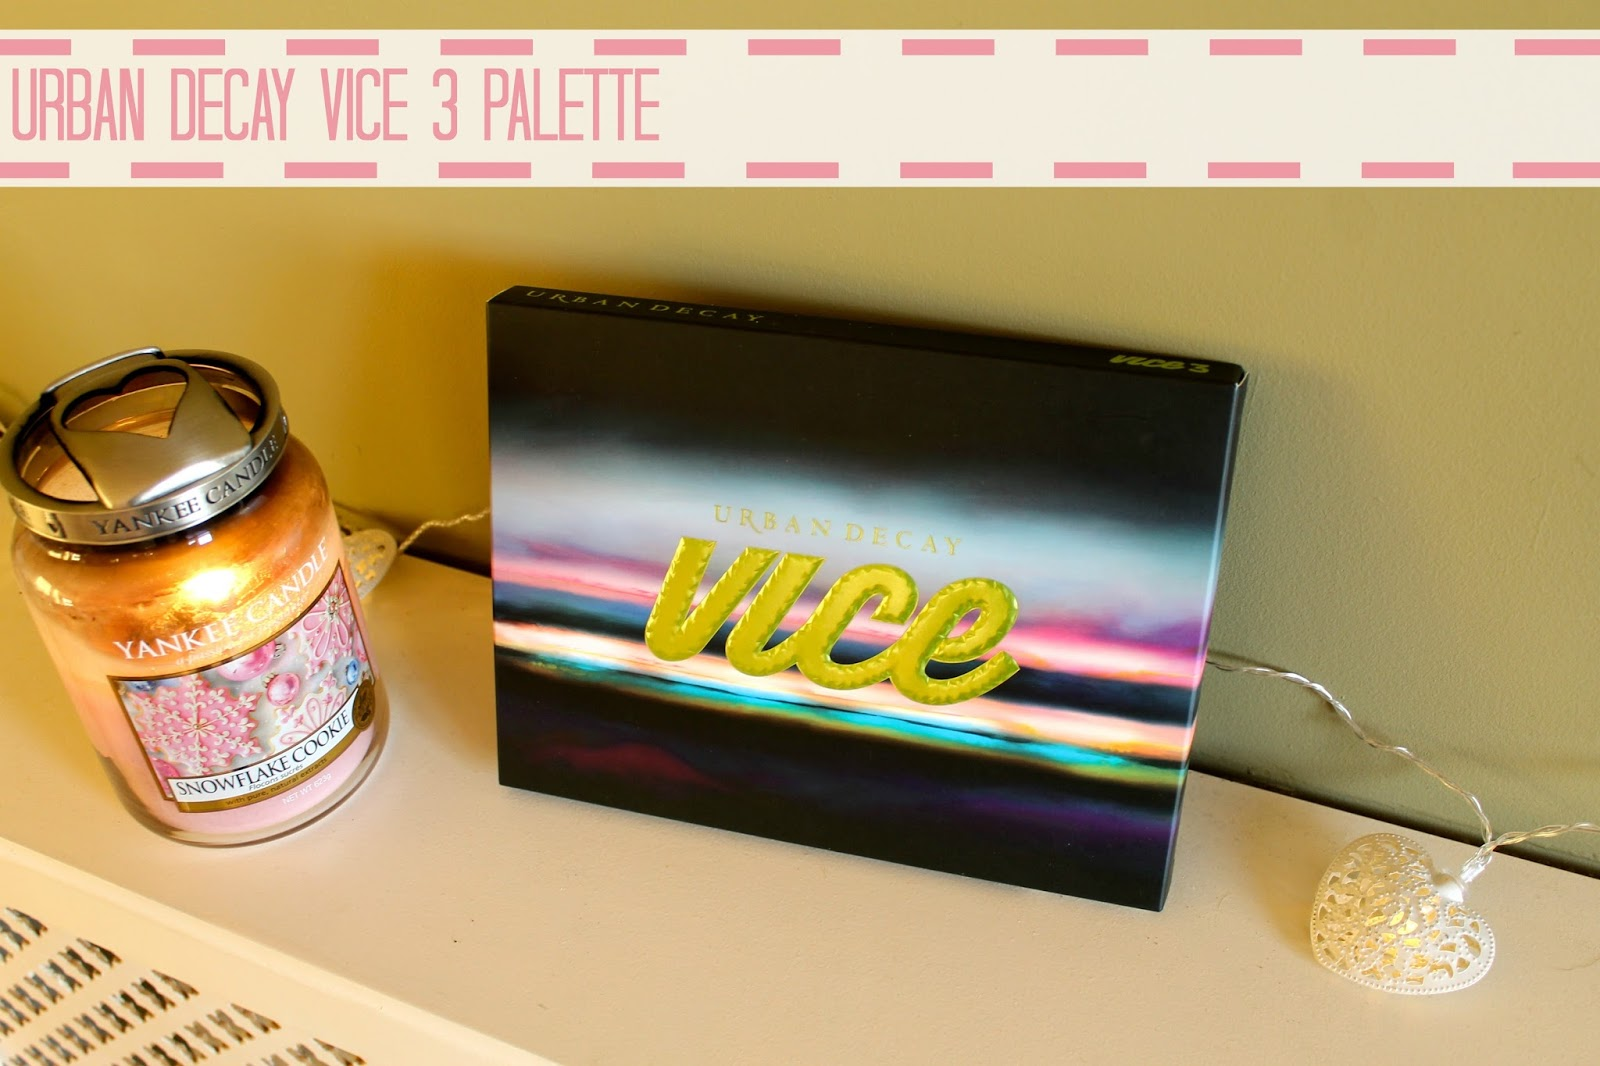 Urban decay vice 3 review